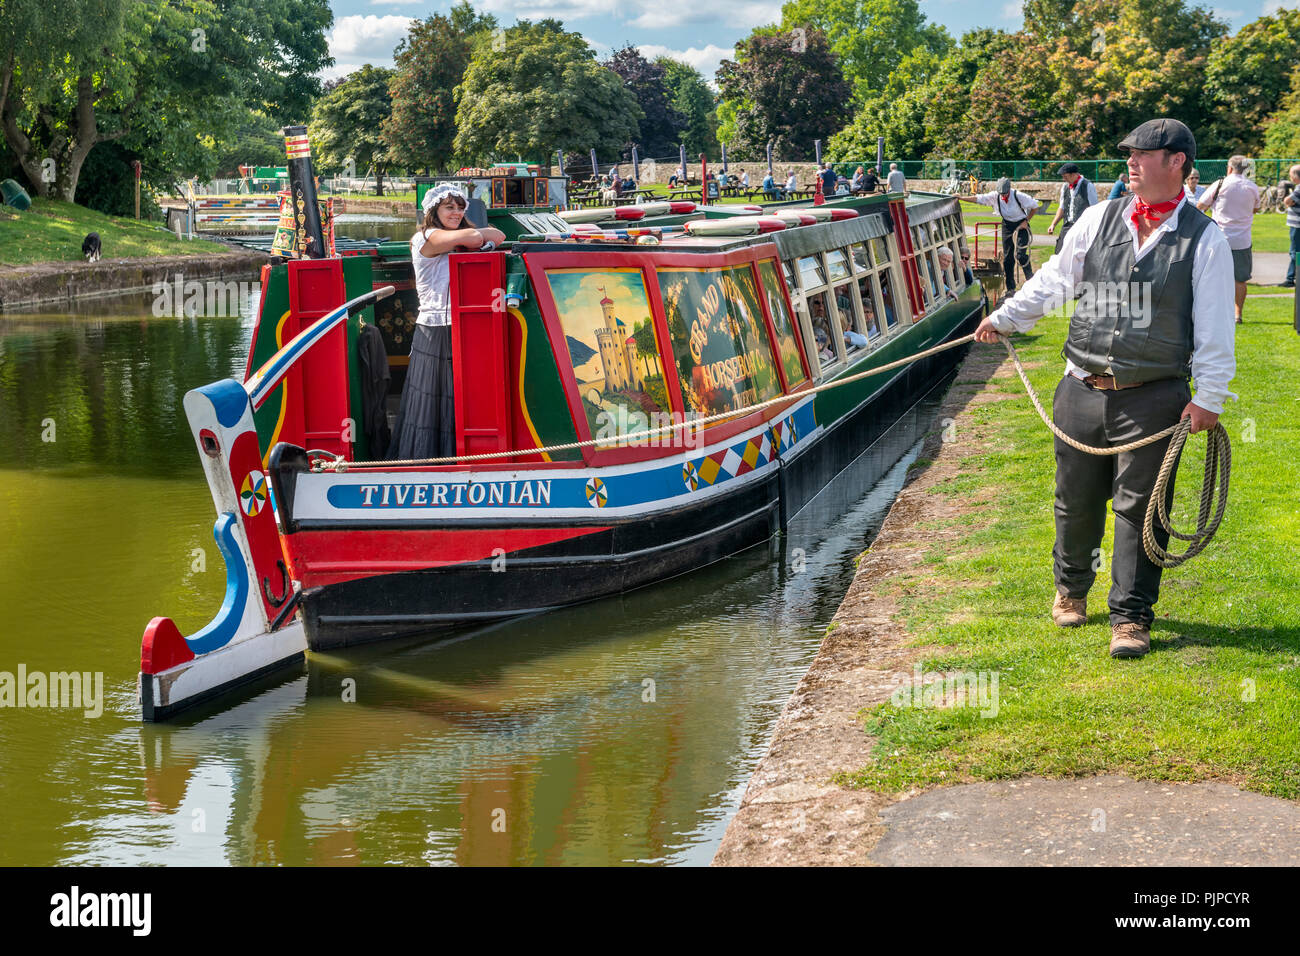 'Tivertonian', the last horse-drawn barge in the West Country, is prepared for another trip down the Grand Western Canal near Tiverton in Devon. - Stock Image